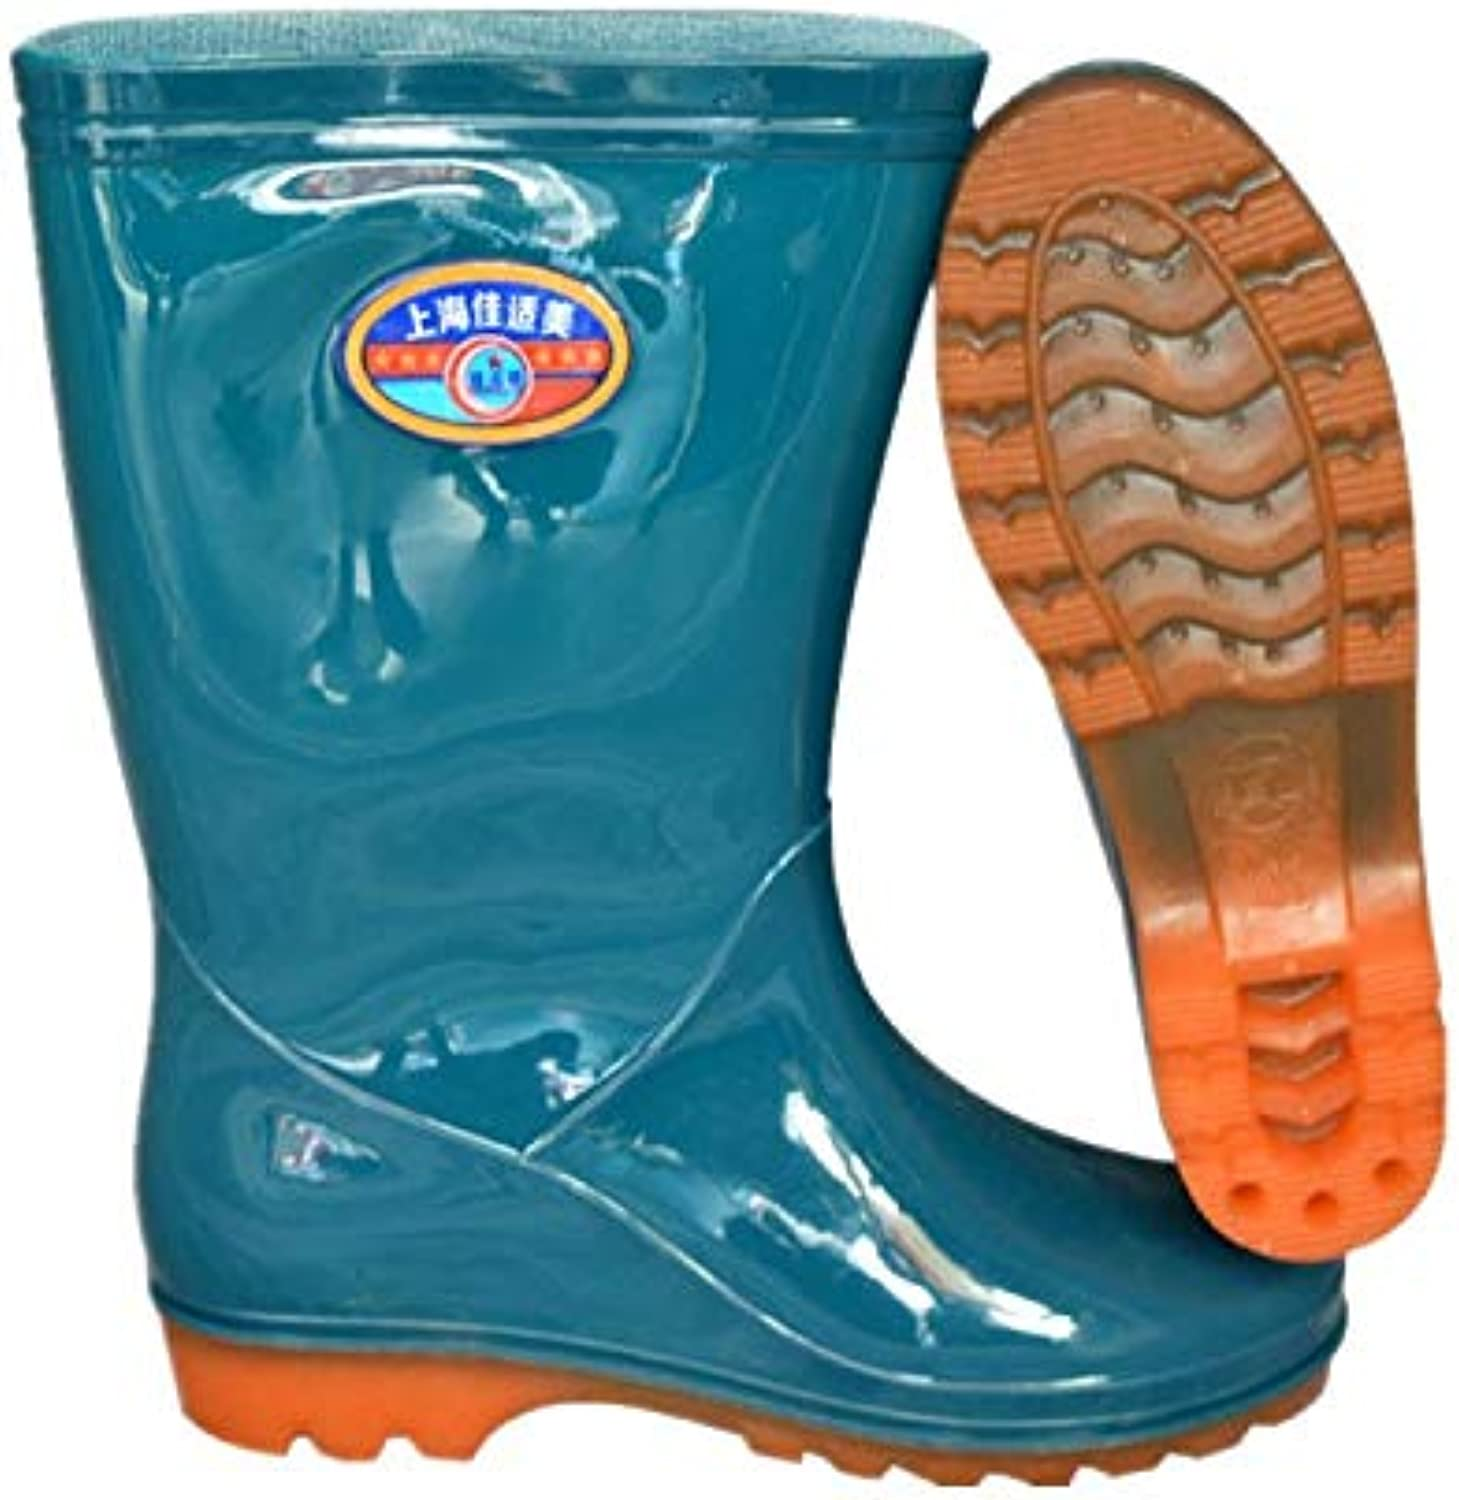 8ae746d3086 Top Shishang Warm in in in the tube labor boots non-slip waterproof beef  tendon